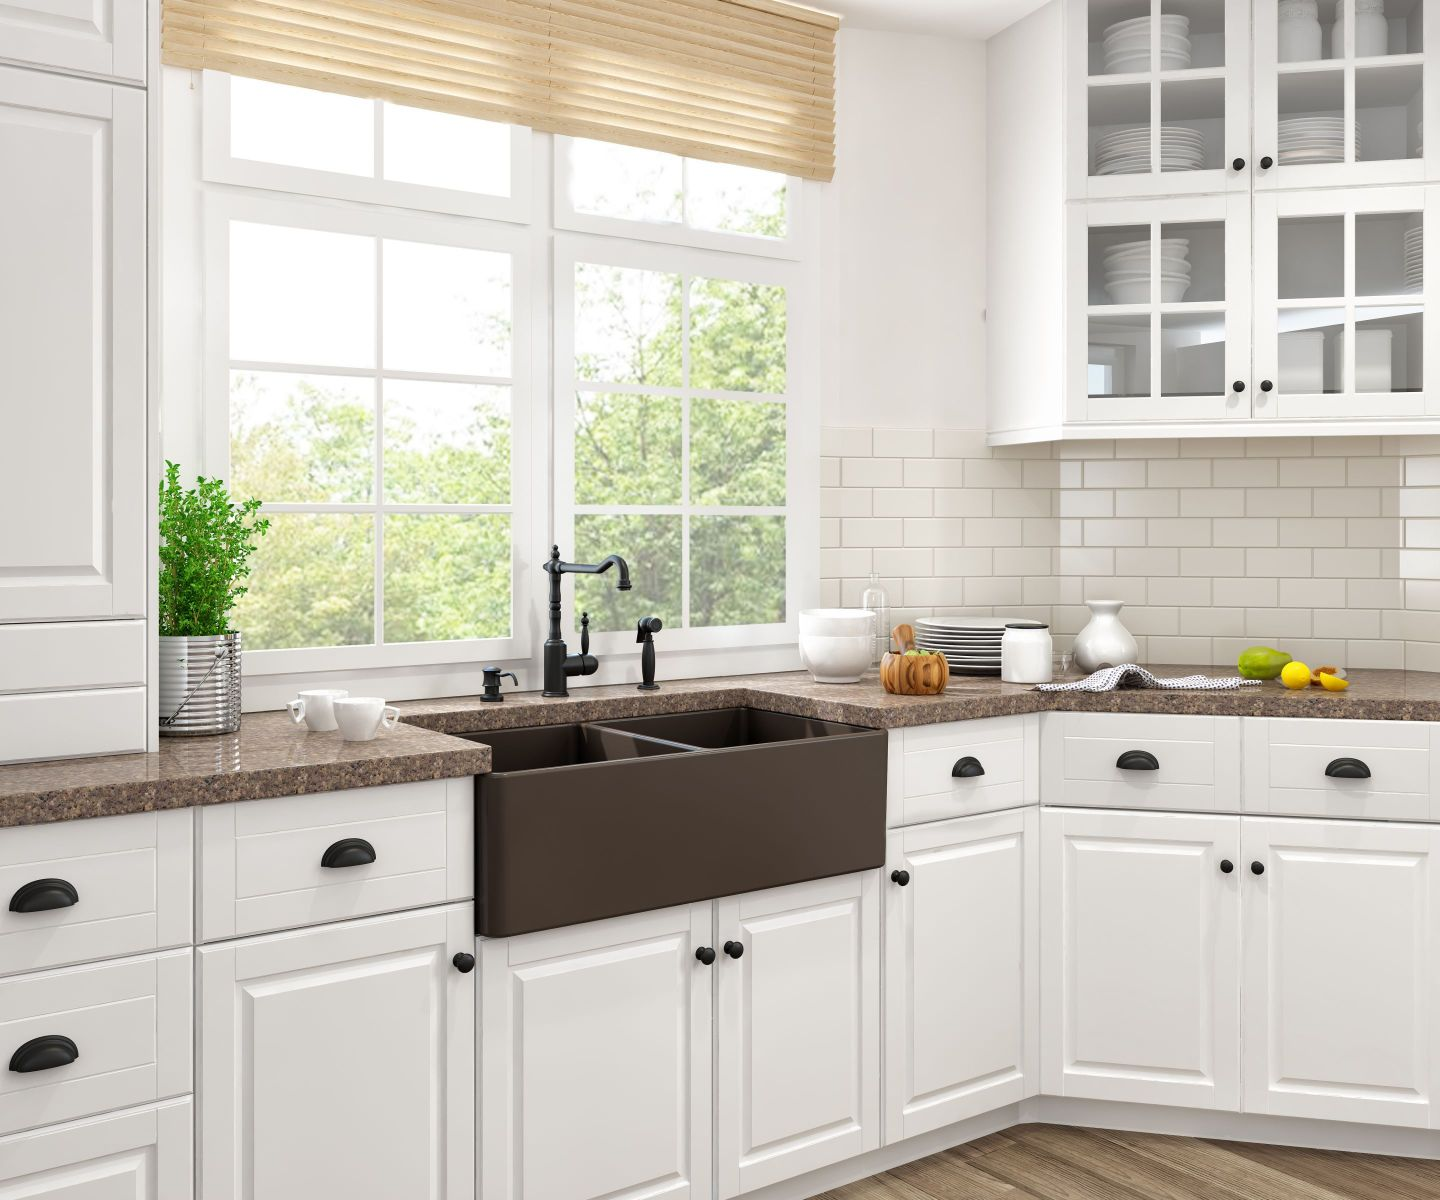 Classico-lifestyle Farmhouse Chic - 5 Tips for Picking a Farmhouse Sink